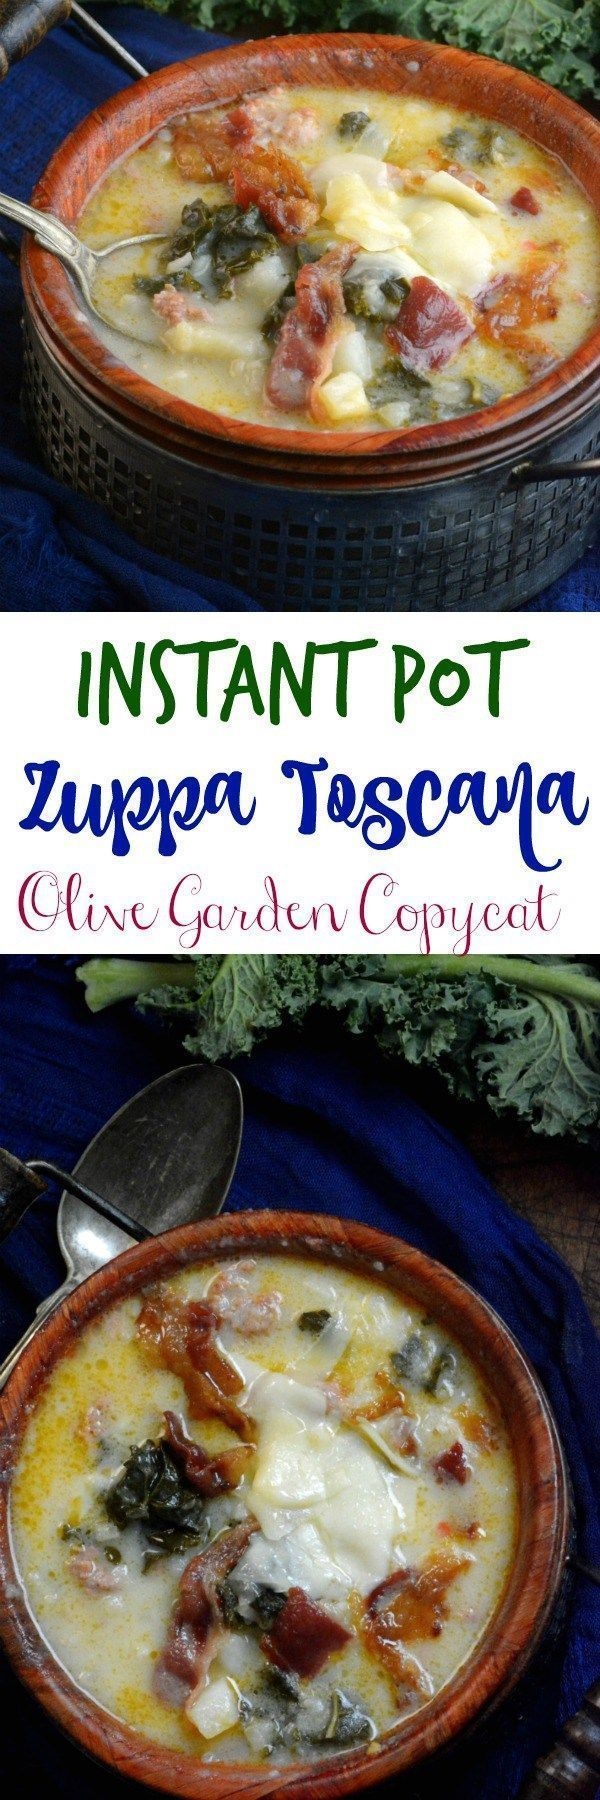 2258 best instant pot images on pinterest for How much is soup and salad at olive garden